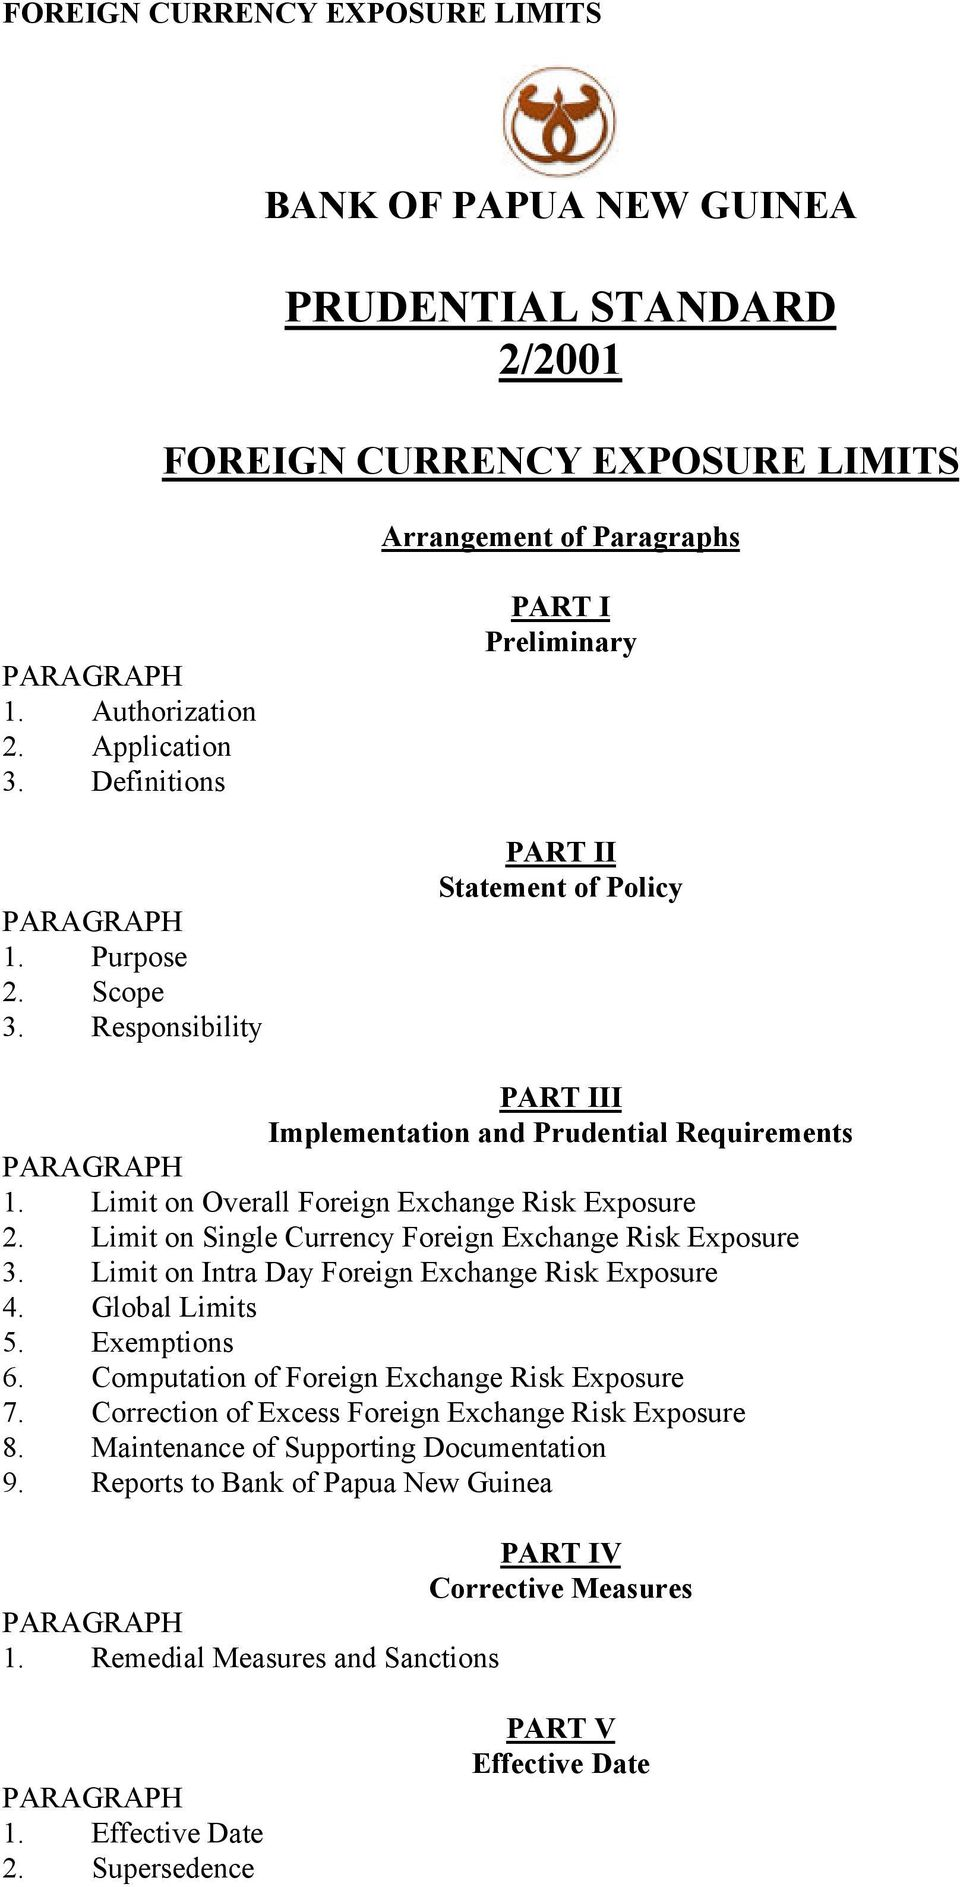 Limit on Single Currency Foreign Exchange Risk Exposure 3. Limit on Intra Day Foreign Exchange Risk Exposure 4. Global Limits 5. Exemptions 6. Computation of Foreign Exchange Risk Exposure 7.